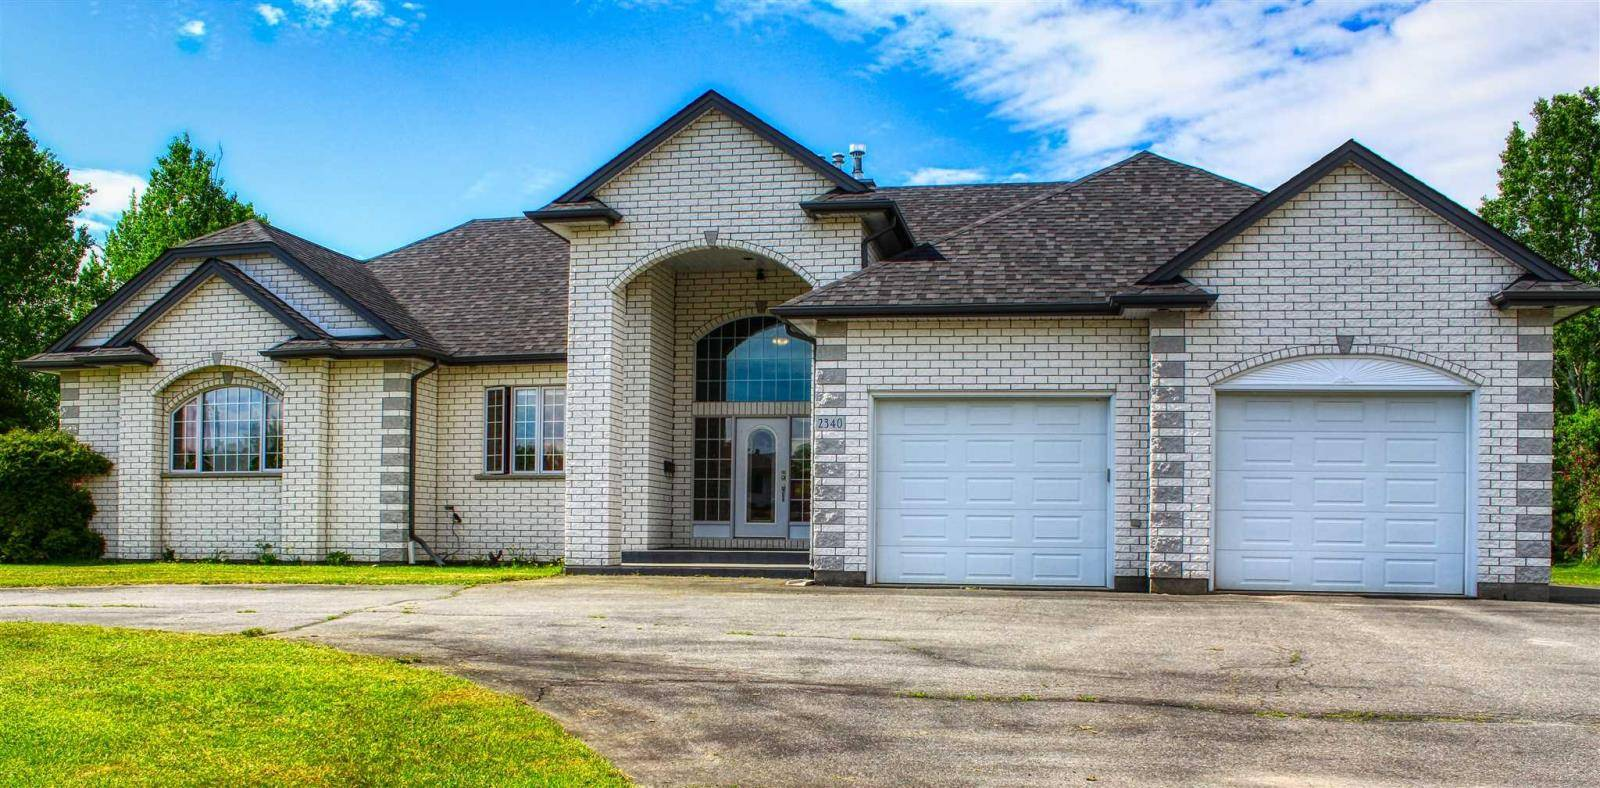 House for sale at 2340 Quail Dr Thunder Bay Ontario - MLS: TB191857